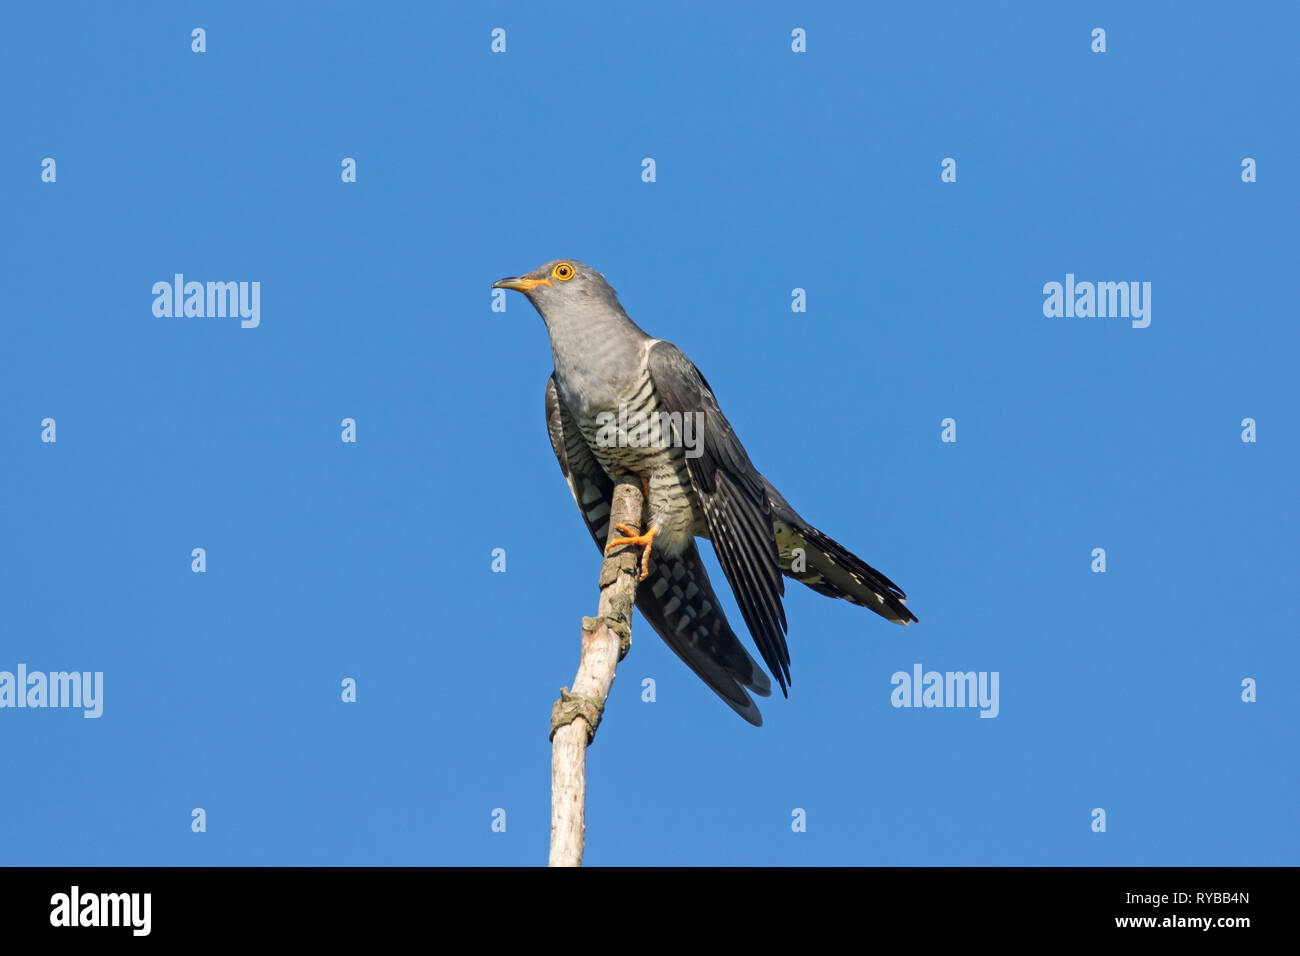 Common cuckoo (Cuculus canorus) male perched in tree on top of branch in spring - Stock Image